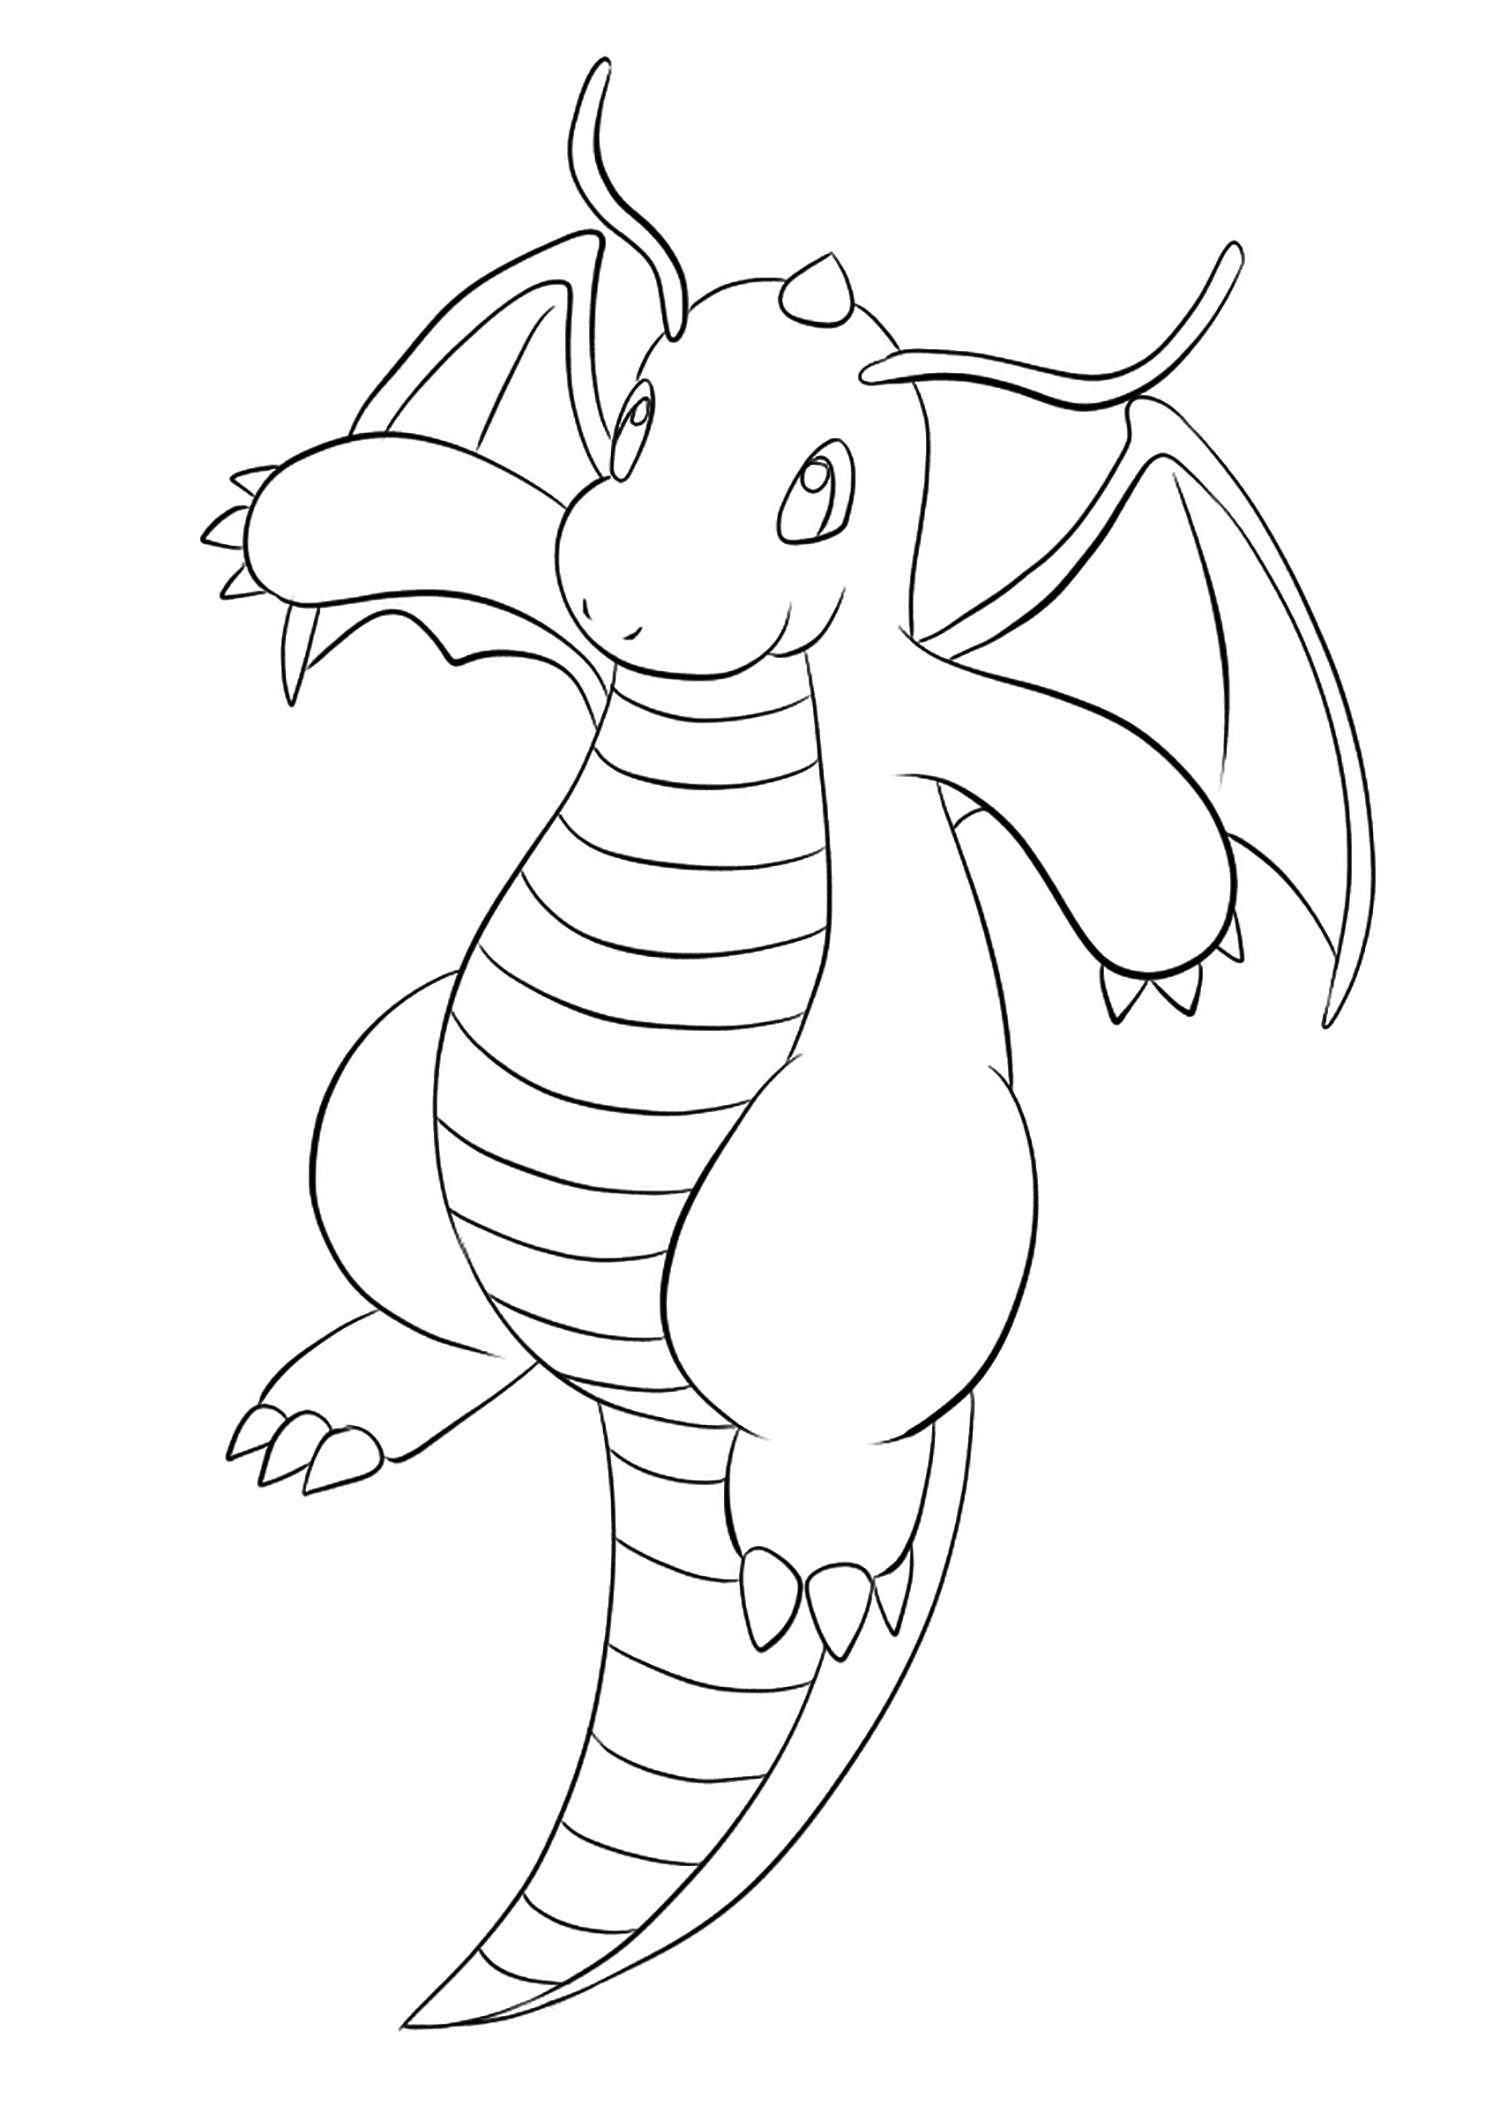 Dragonite (No.149)Dragonite Coloring page, Generation I Pokemon of type Dragon and FlyingOriginal image credit: Pokemon linearts by Lilly Gerbil on Deviantart.Permission:  All rights reserved © Pokemon company and Ken Sugimori.